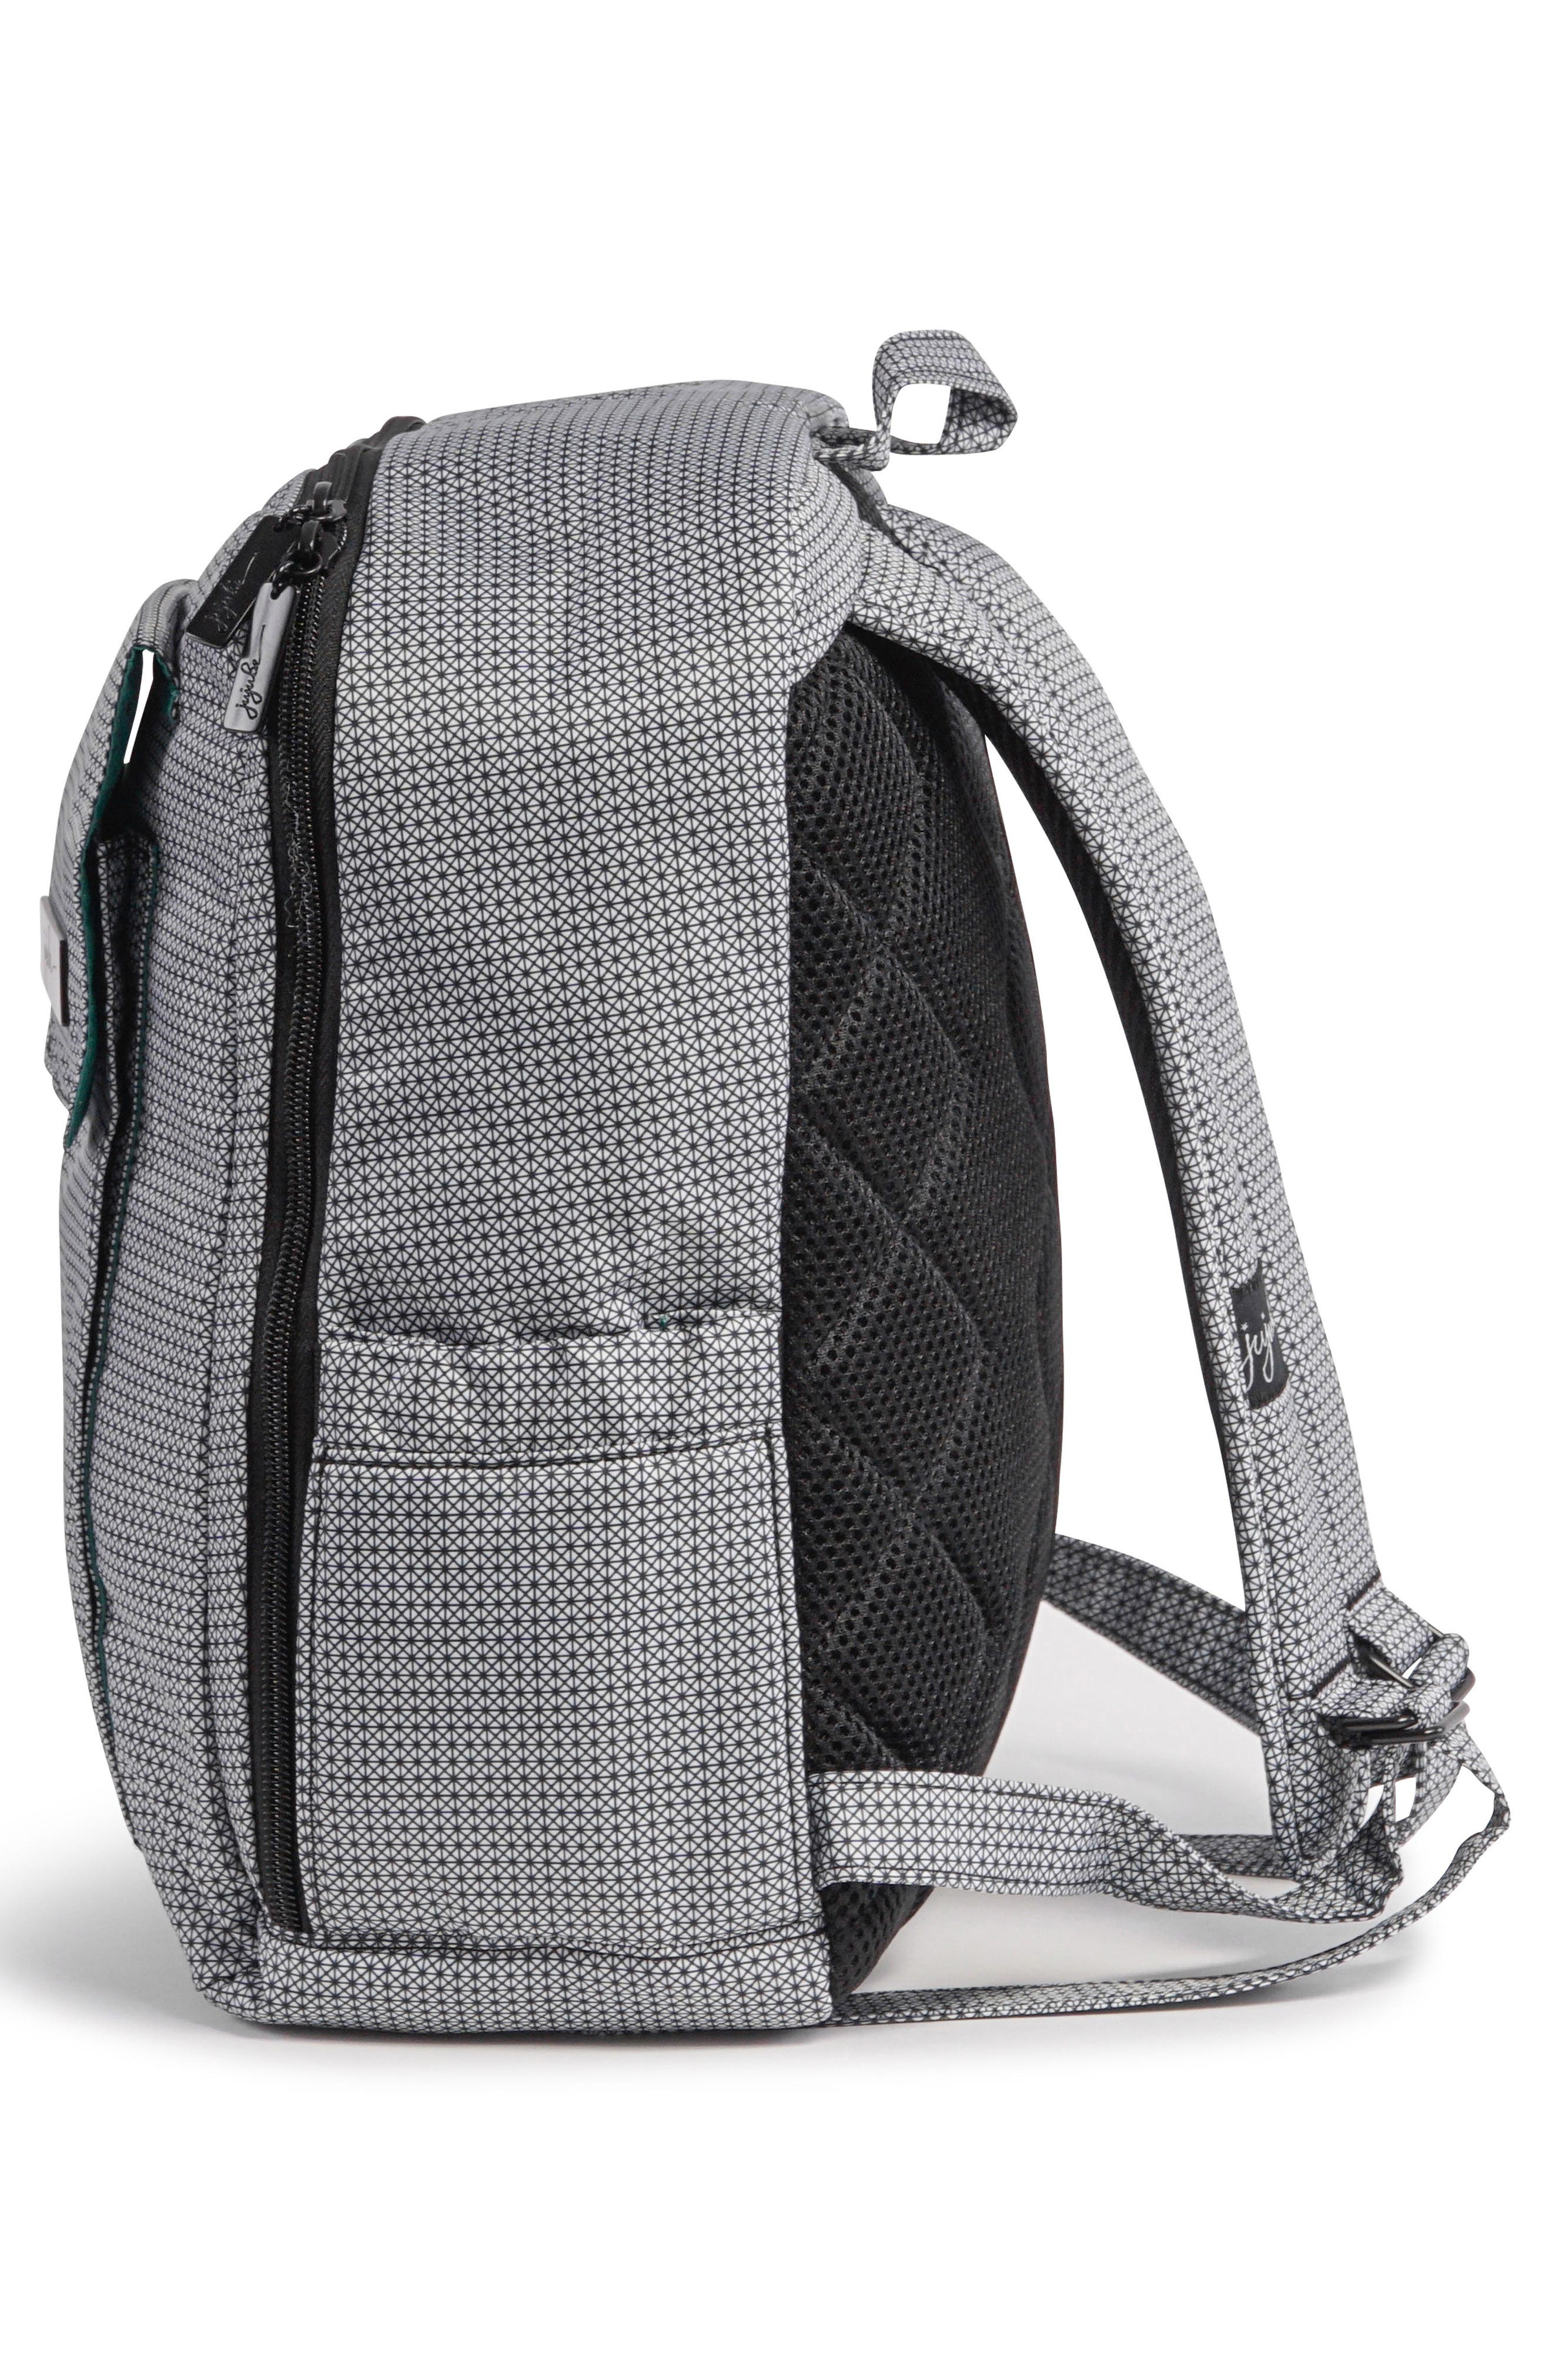 'Mini Be - Onyx Collection' Backpack,                             Alternate thumbnail 7, color,                             BLACK MATRIX